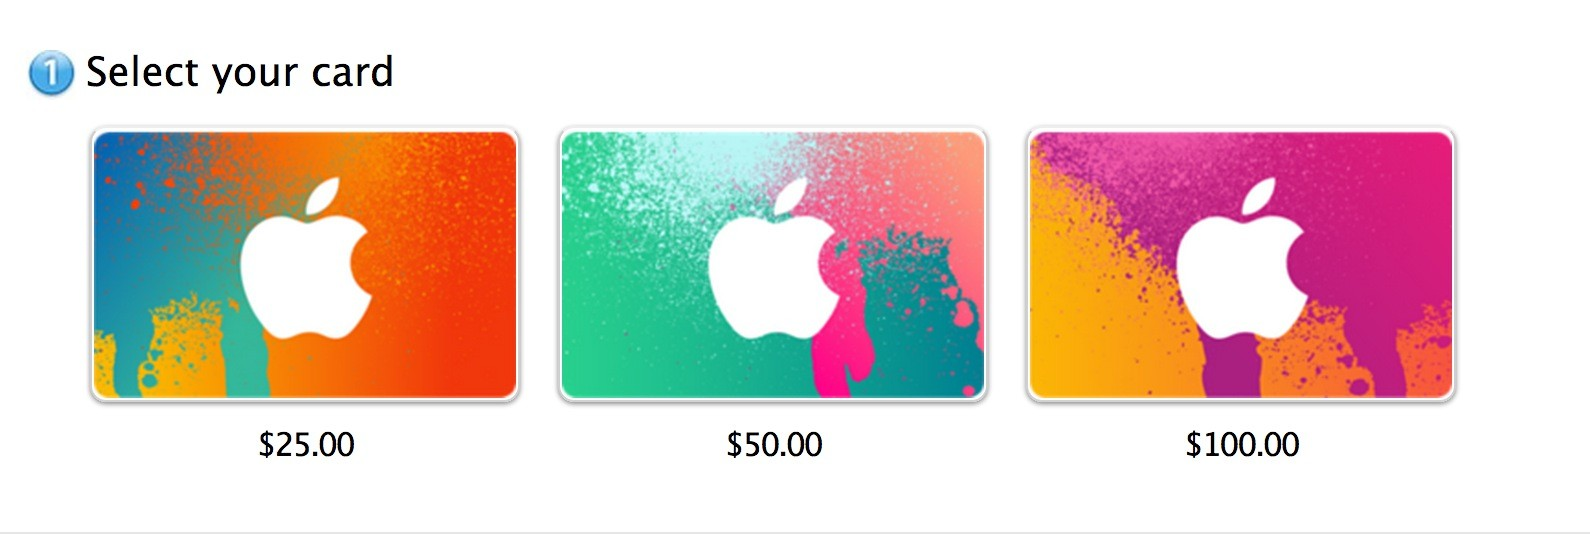 send someone itunes gift card